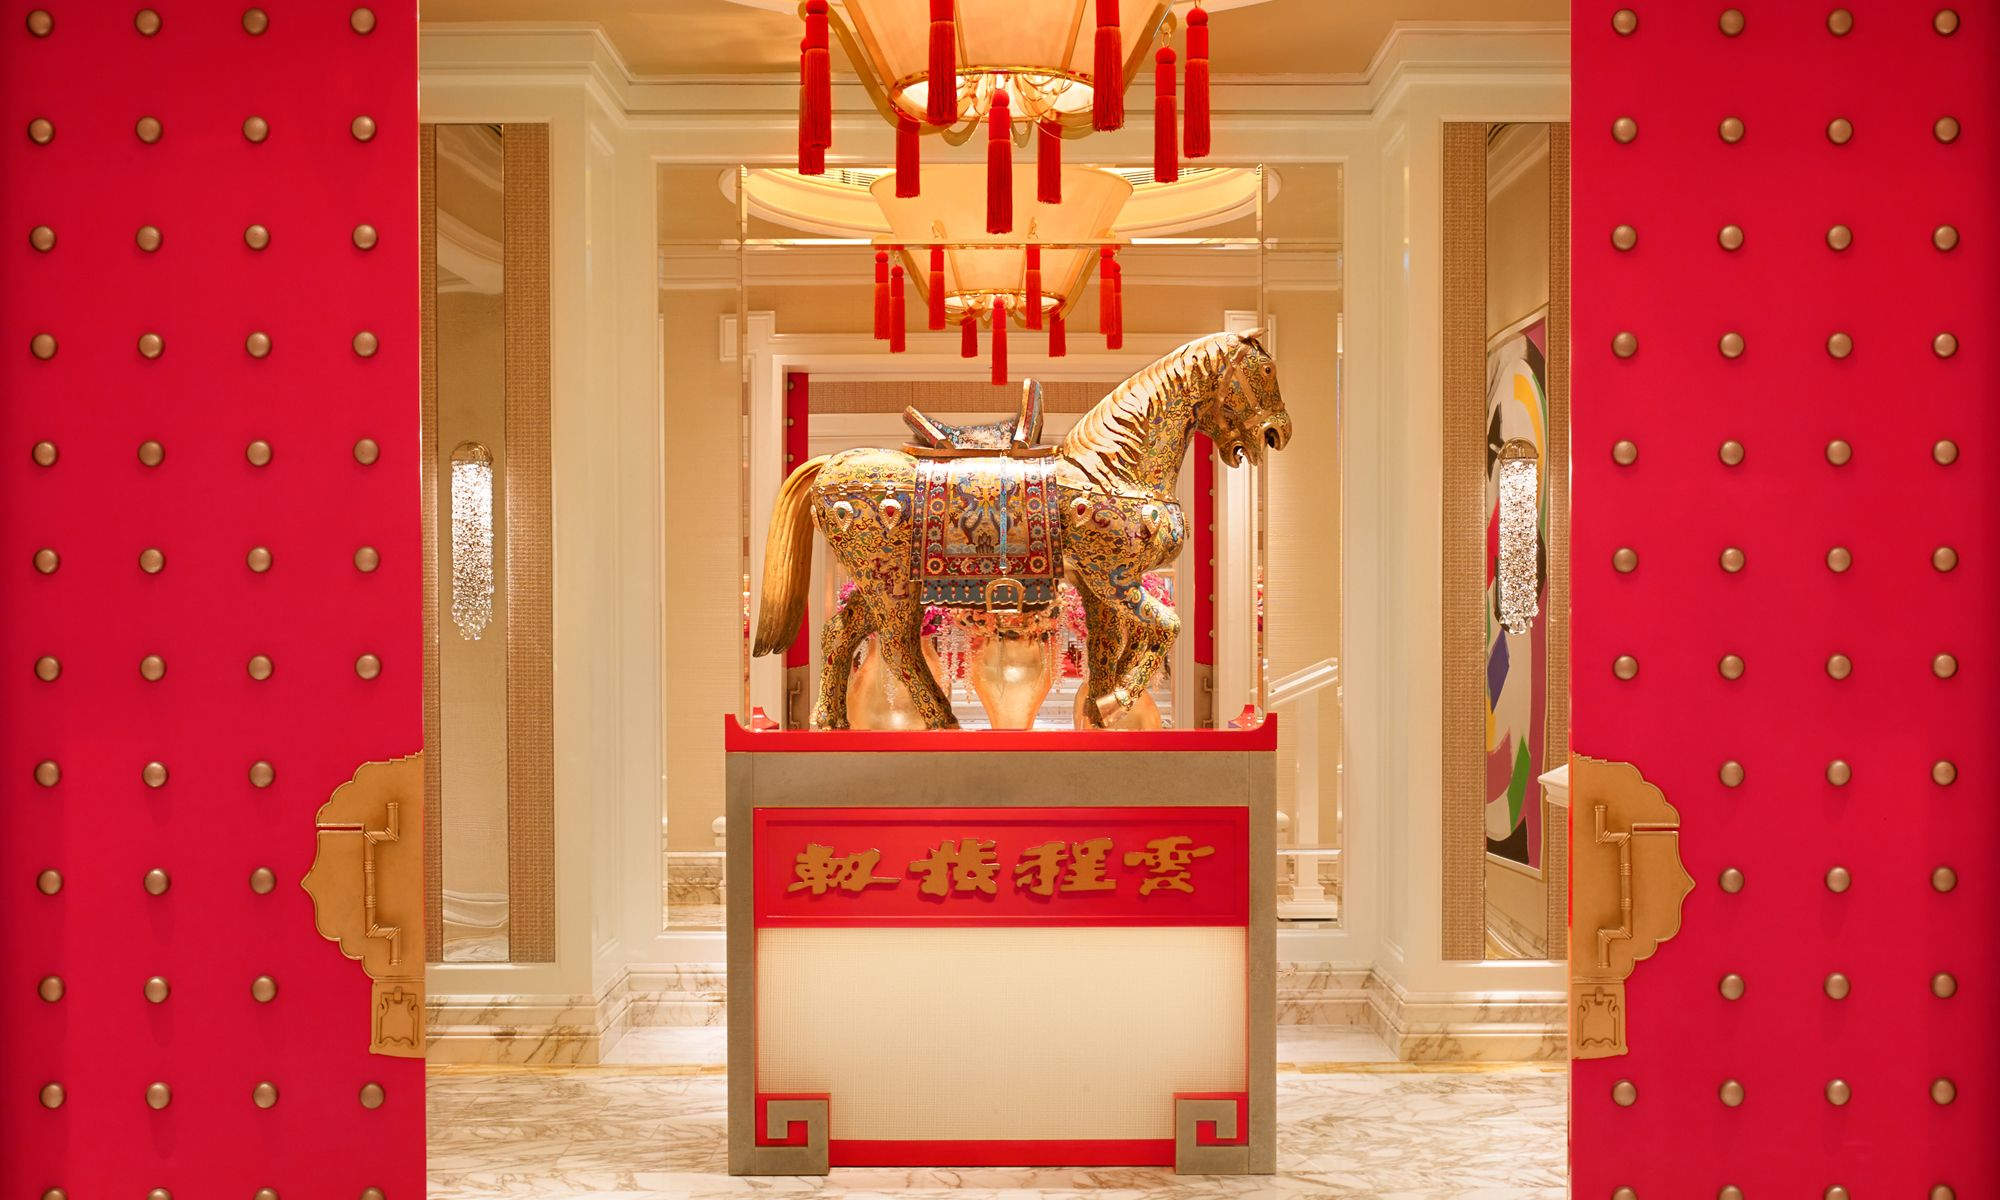 Macau's Wynn Resorts Represent The Pinnacle Of Cantonese Cuisine